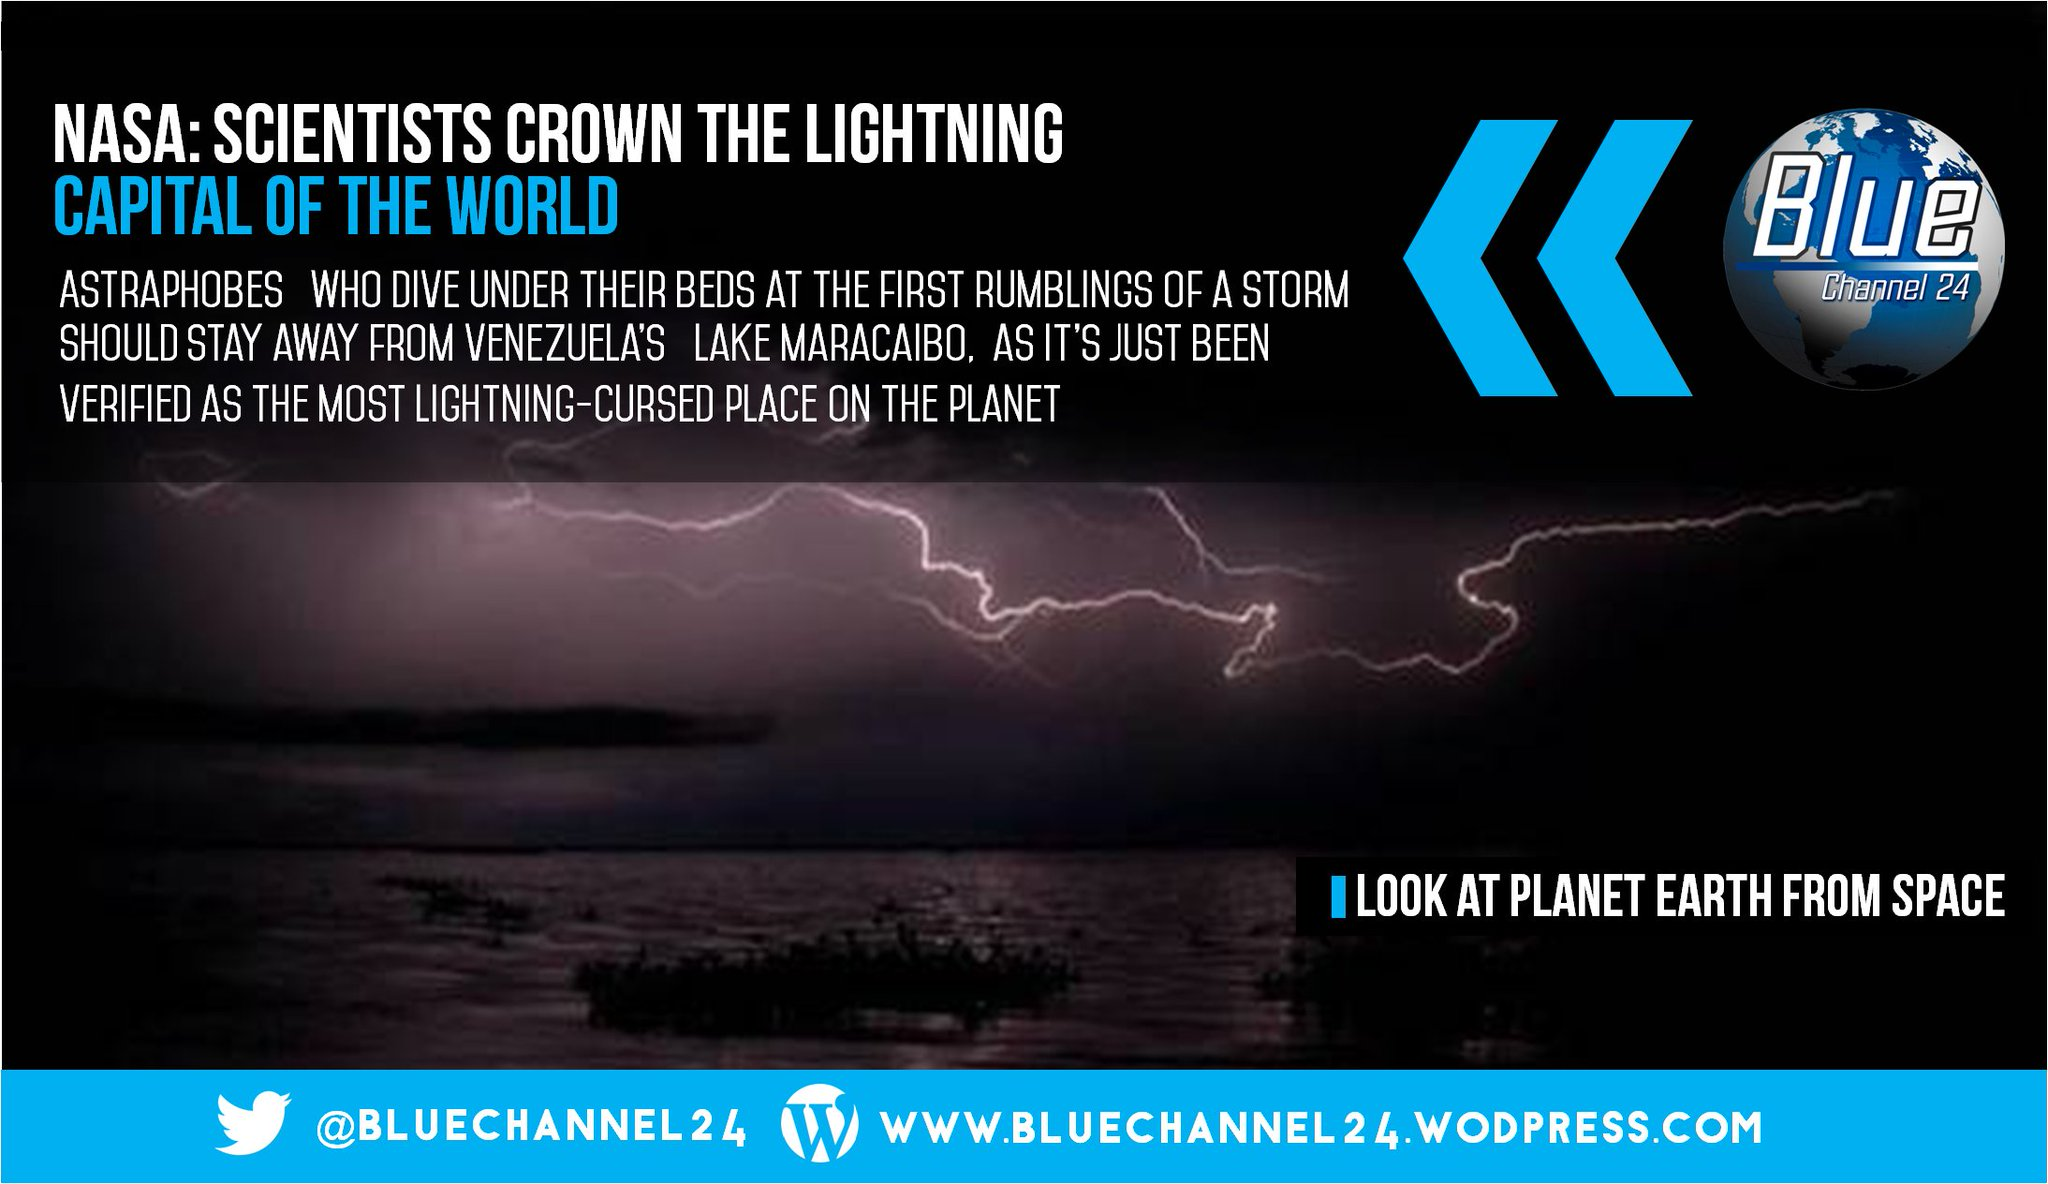 Lake Maracaibo in Venezuela: Earth's New Lightning Capital Revealed, according NASA